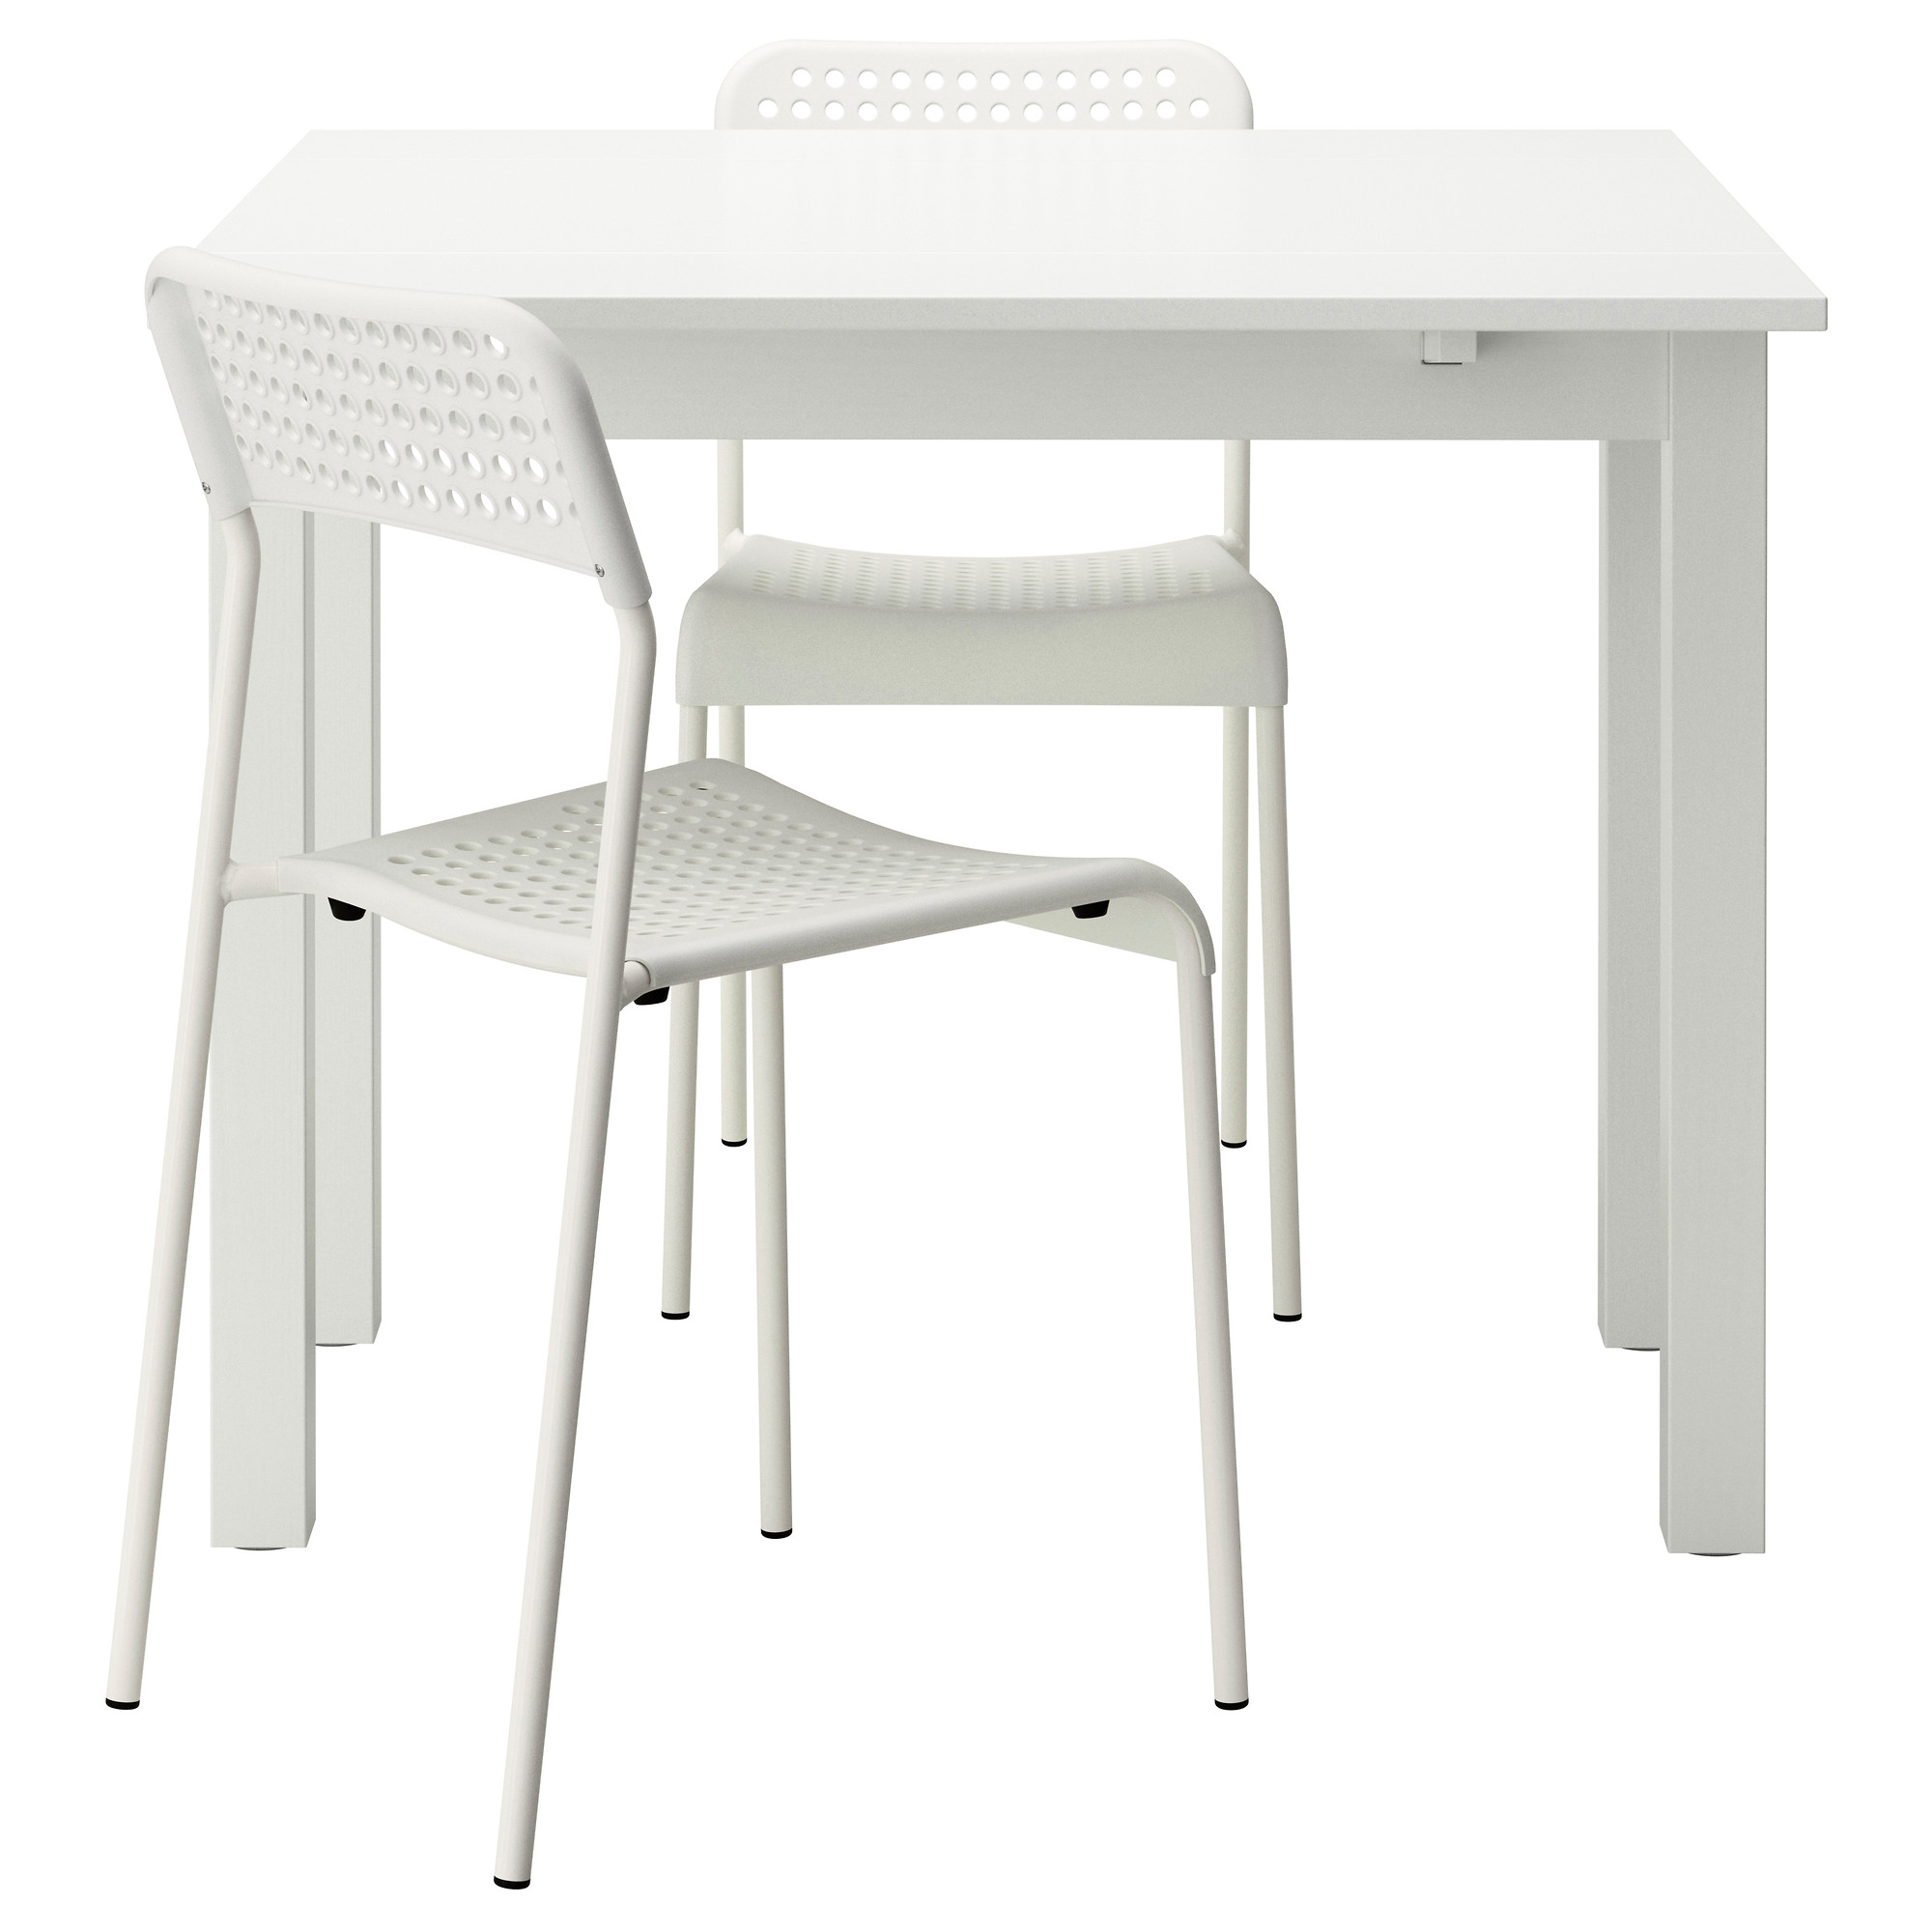 Table et chaise de cuisine ikea table chaise cuisine for Ikea cuisine table haute